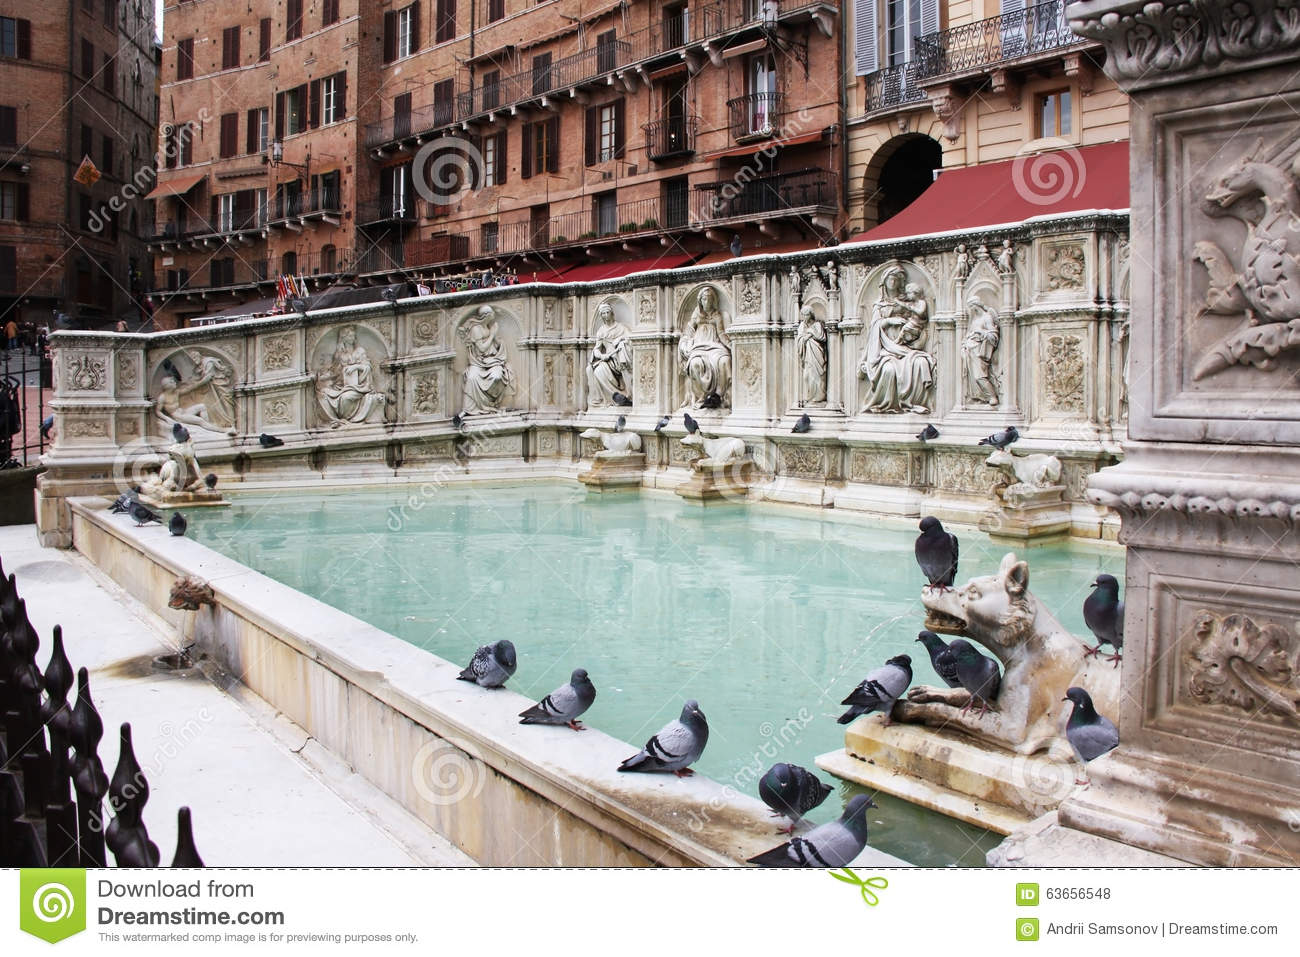 Fonte gaia siena stock photo image of beautiful 19th - Fontaine exterieure fonte ...